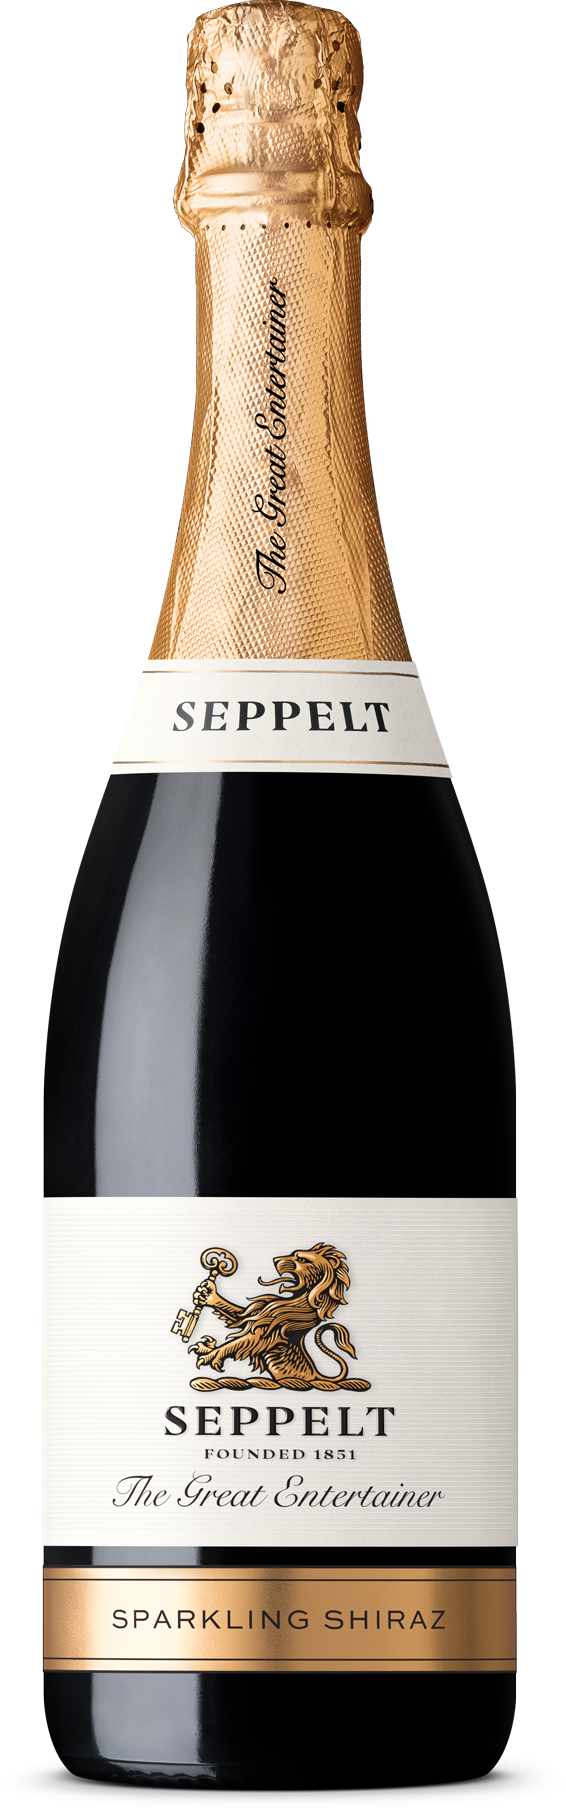 $78.00 per case (6) delivered - SEPPELT THE GREAT ENTERTAINER Sparkling Shiraz NV